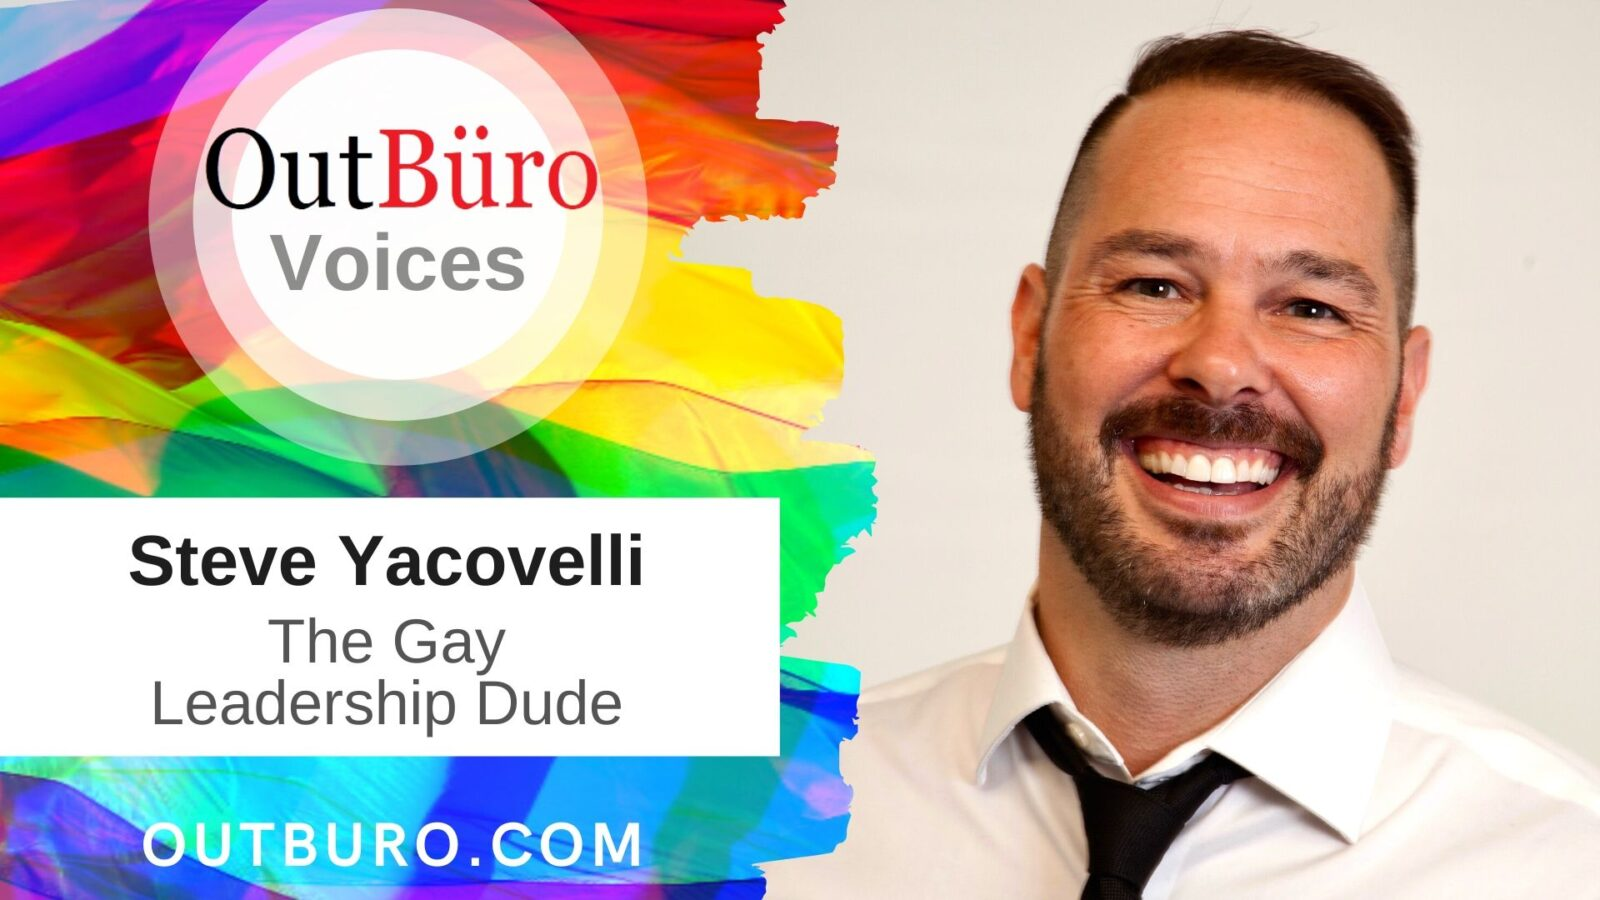 OutBüro Voices Interview Steve Yacovelli LGBT Entrepreneur Producer Director Writer Vim Media Professional Startup Business Owner Video Interview Podcast